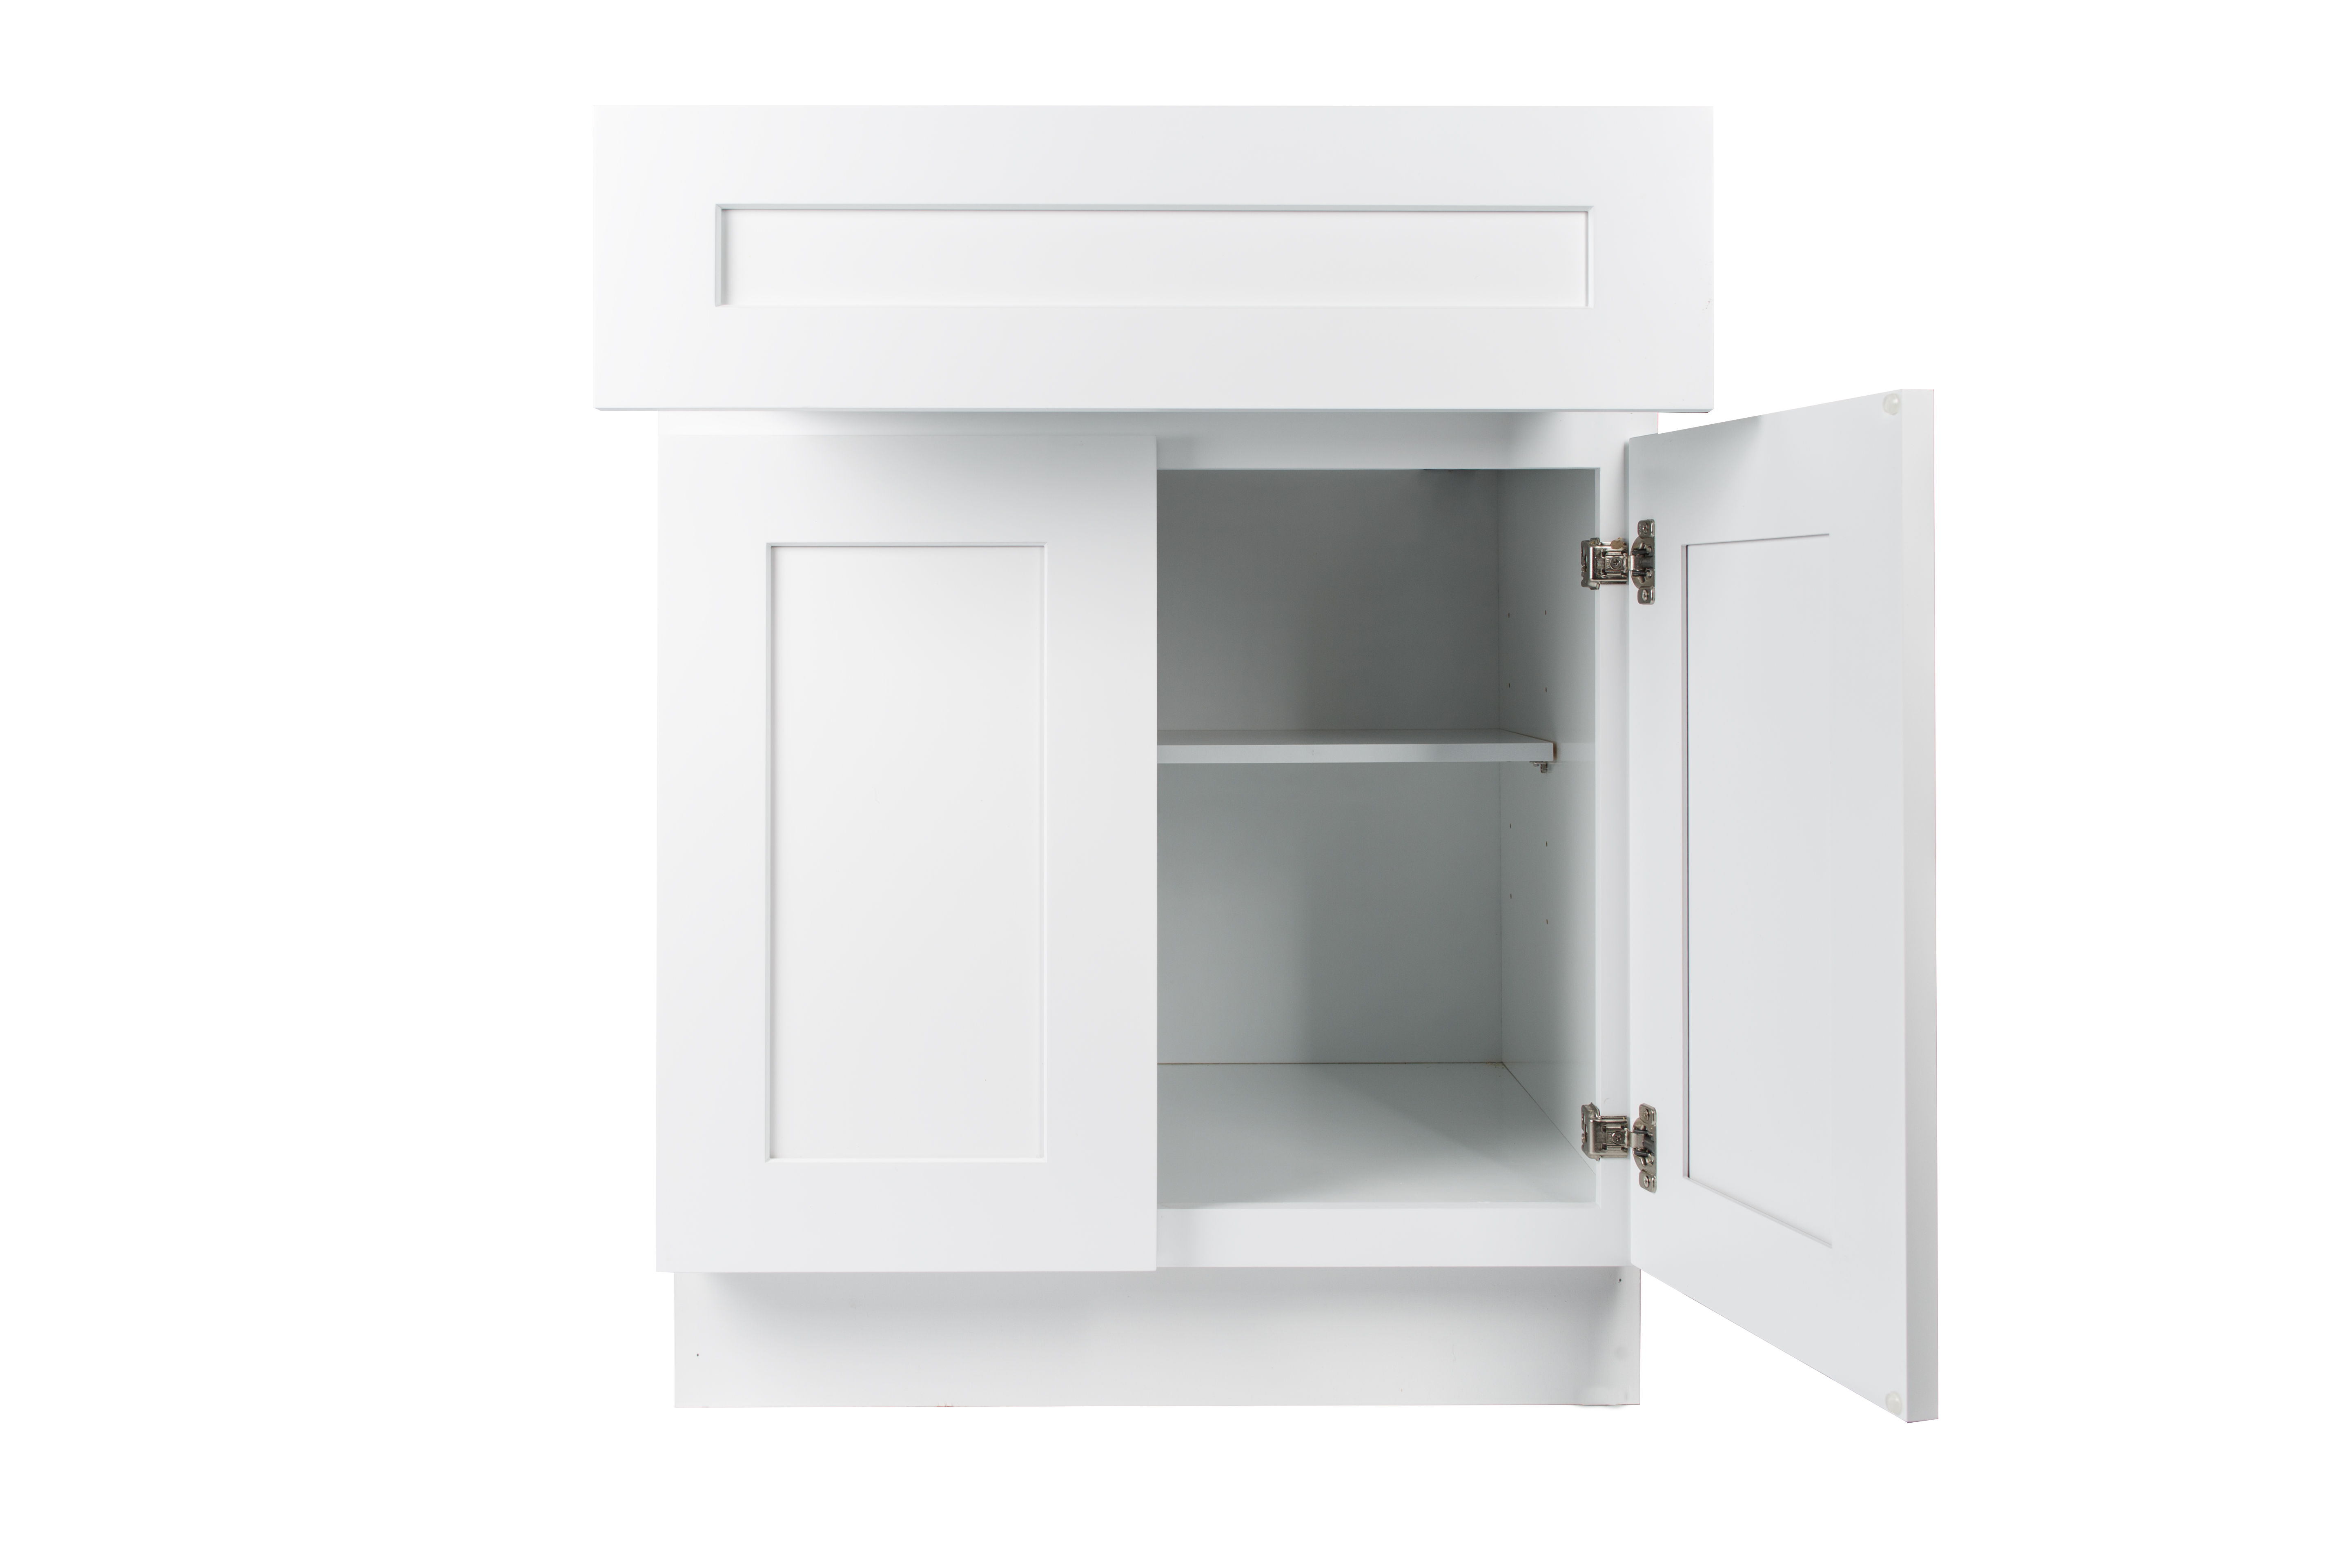 Ready to Assemble 30Wx34.5Hx24D in. Shaker Base Cabinet with 2 Door and 2 Drawer in White